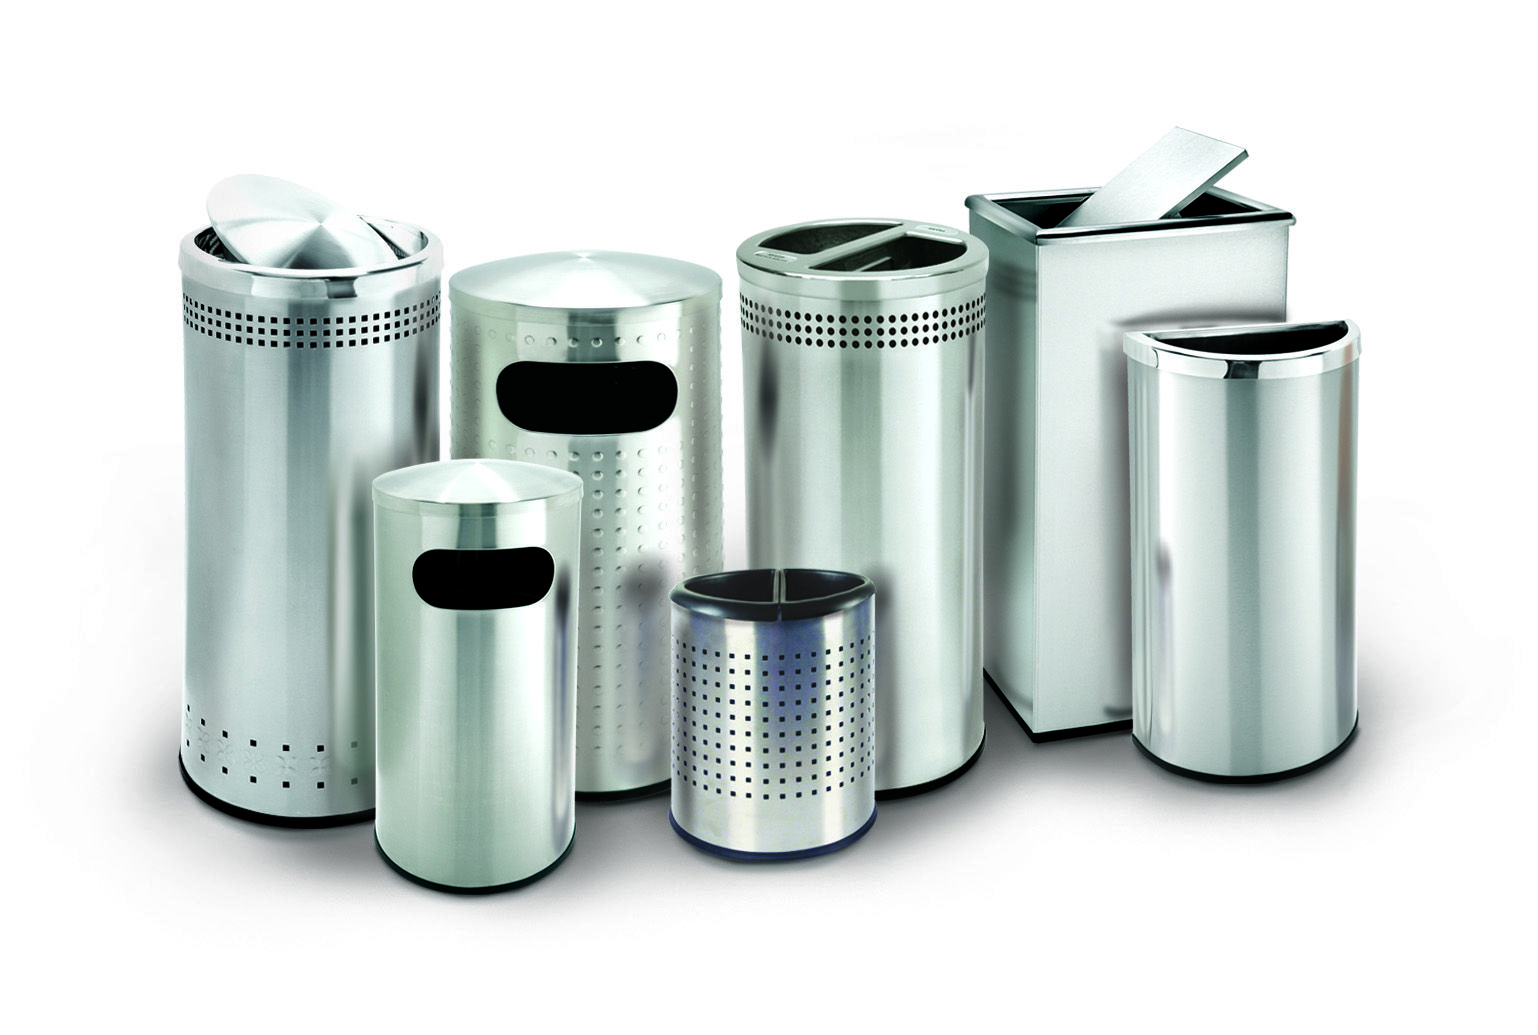 Stainless Steel Trash Cans | Stainless Steel Trash Cans | Pinterest